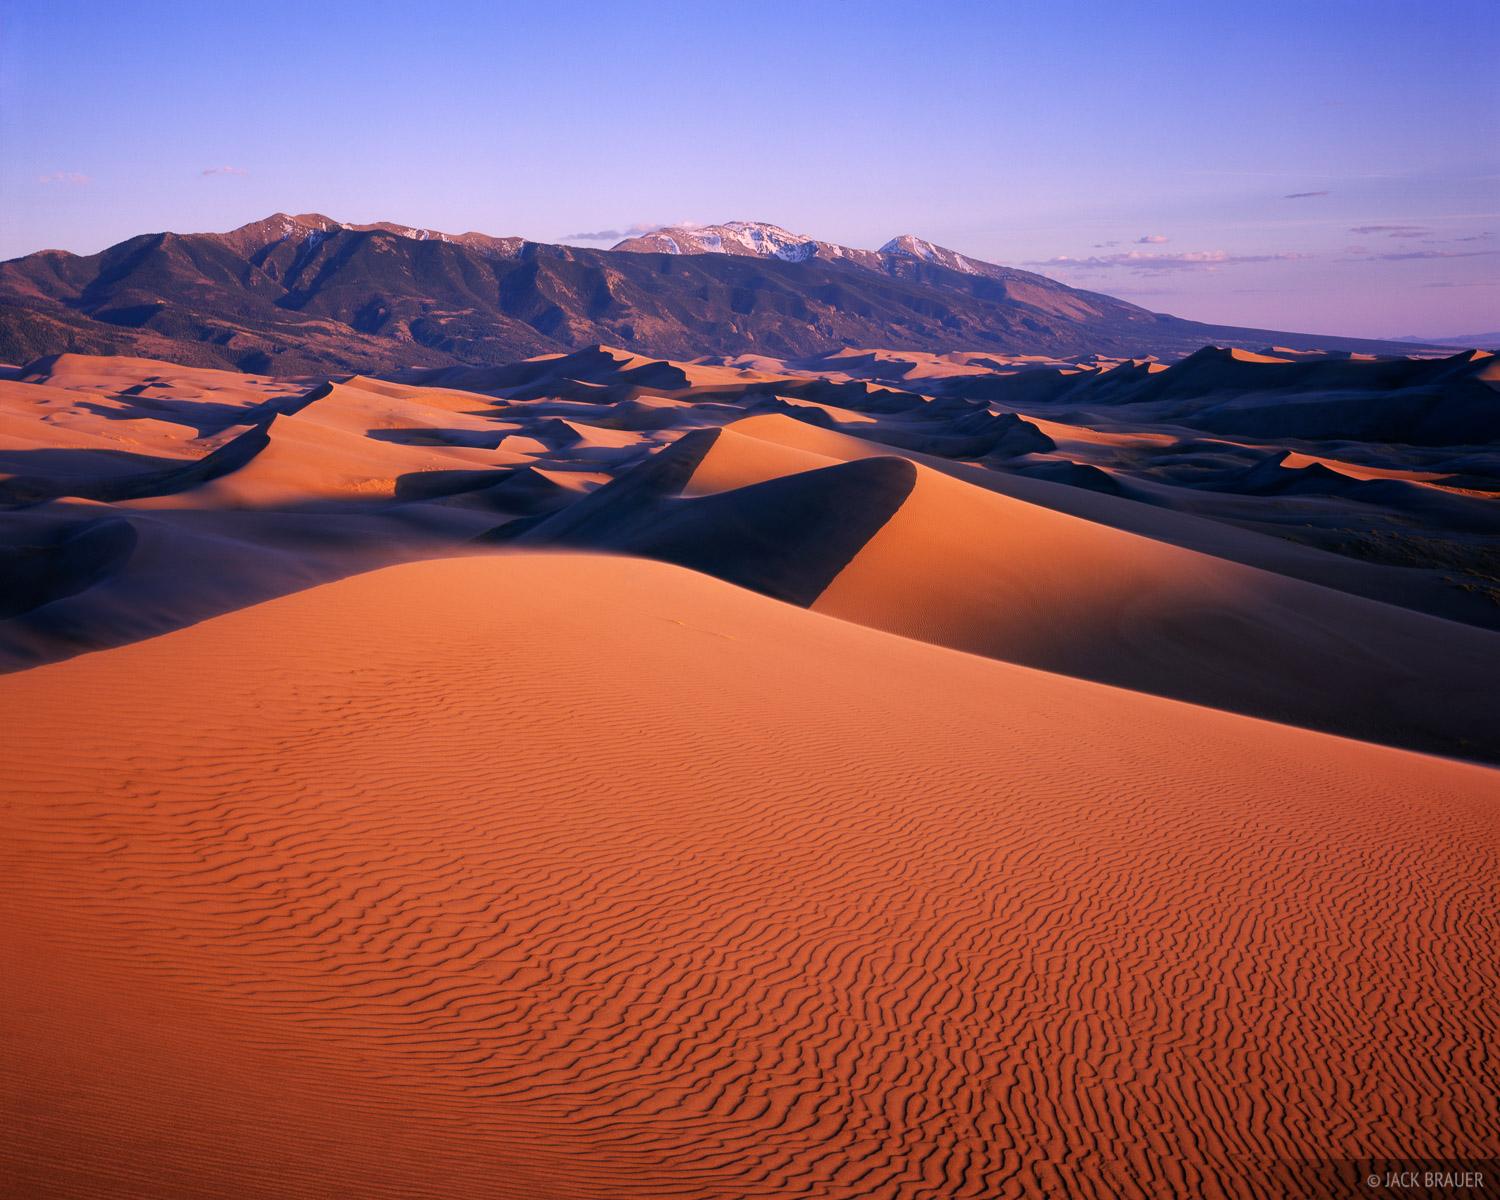 sunset, Great Sand Dunes National Park, Colorado, photo